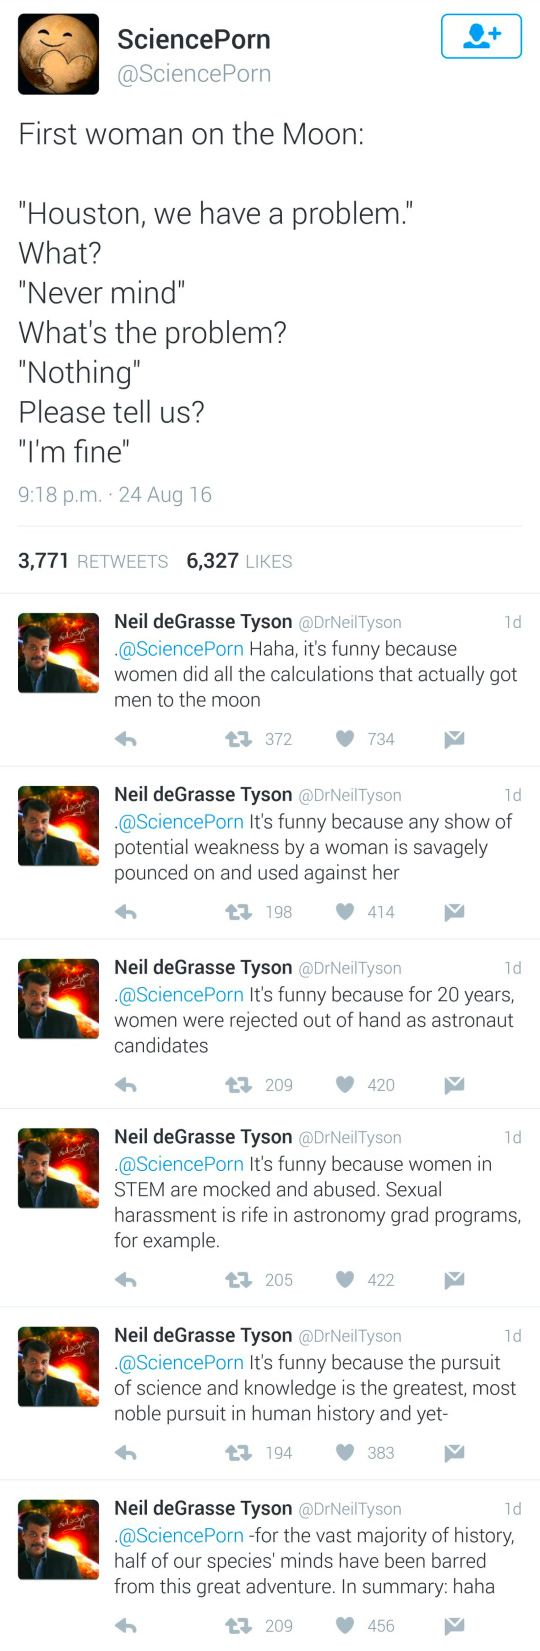 DRAG THEM NEIL